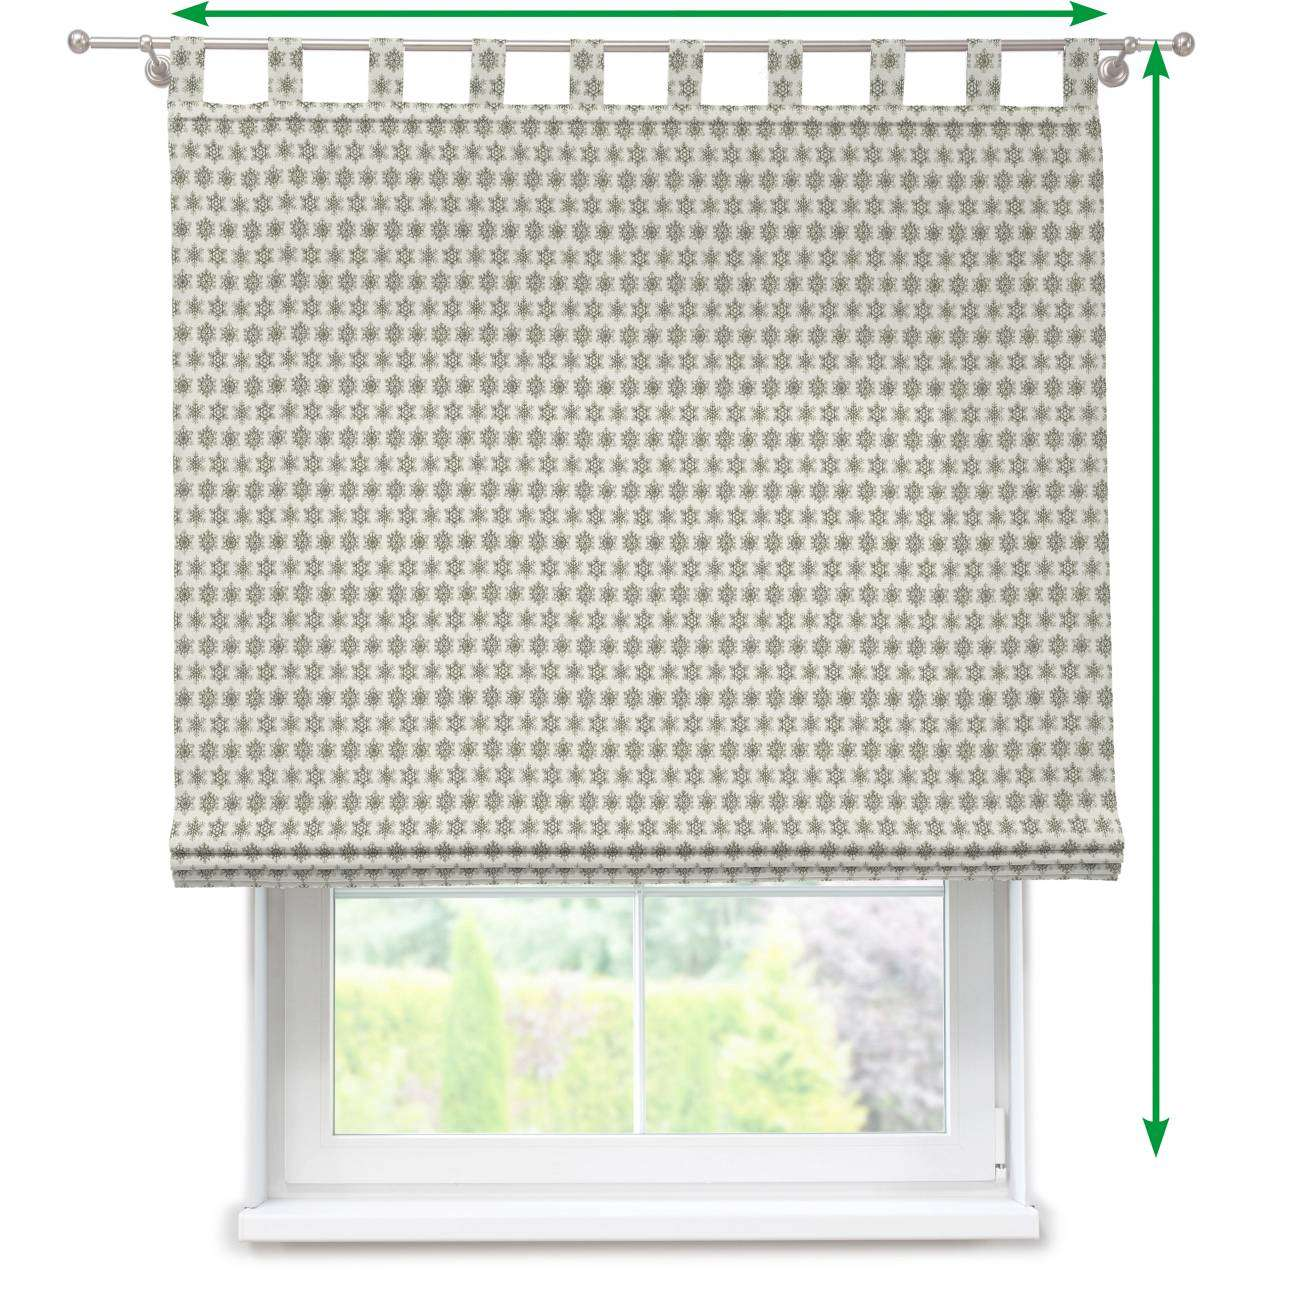 Verona tab top roman blind in collection Christmas , fabric: 630-26